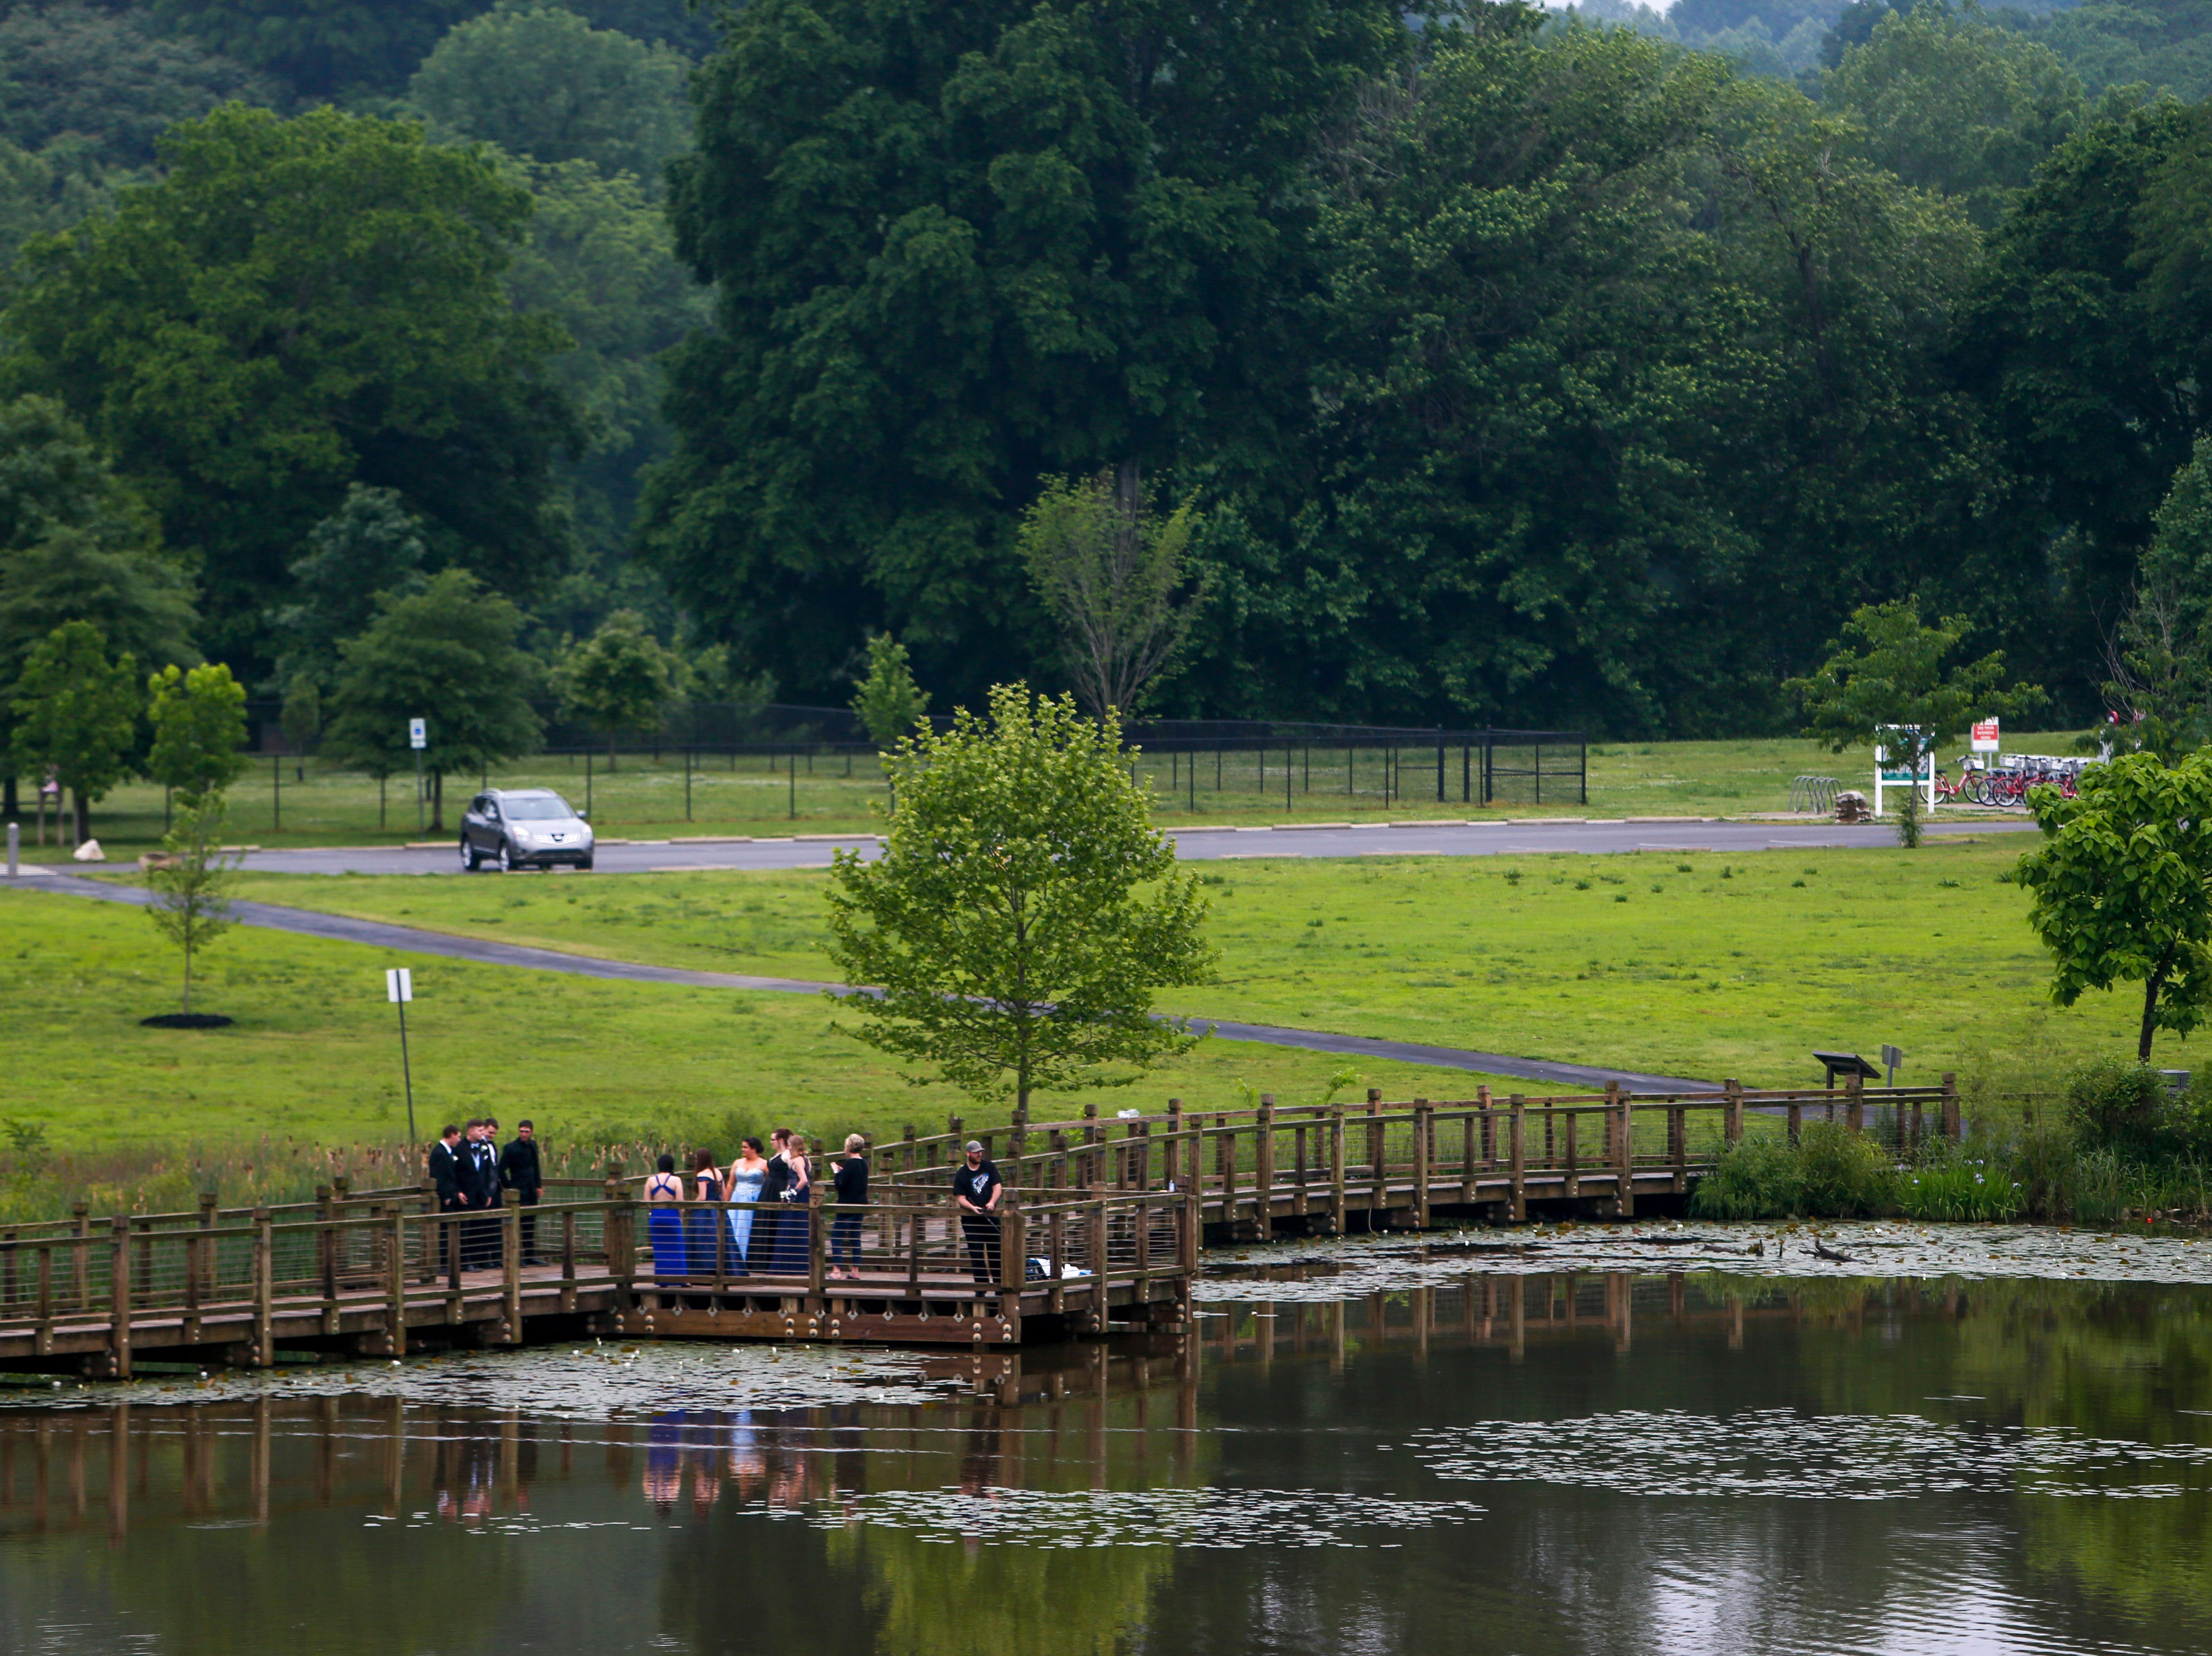 Prom attendees take photos on the docks around Liberty Park while fisherman continue to fish. Hundreds of seniors from Montgomery County Central High School celebrated their senior prom during a break from the weather in an otherwise rainy day at Wilma Rudolph Event Center in Clarksville, Tenn., on Saturday, May 11, 2019.